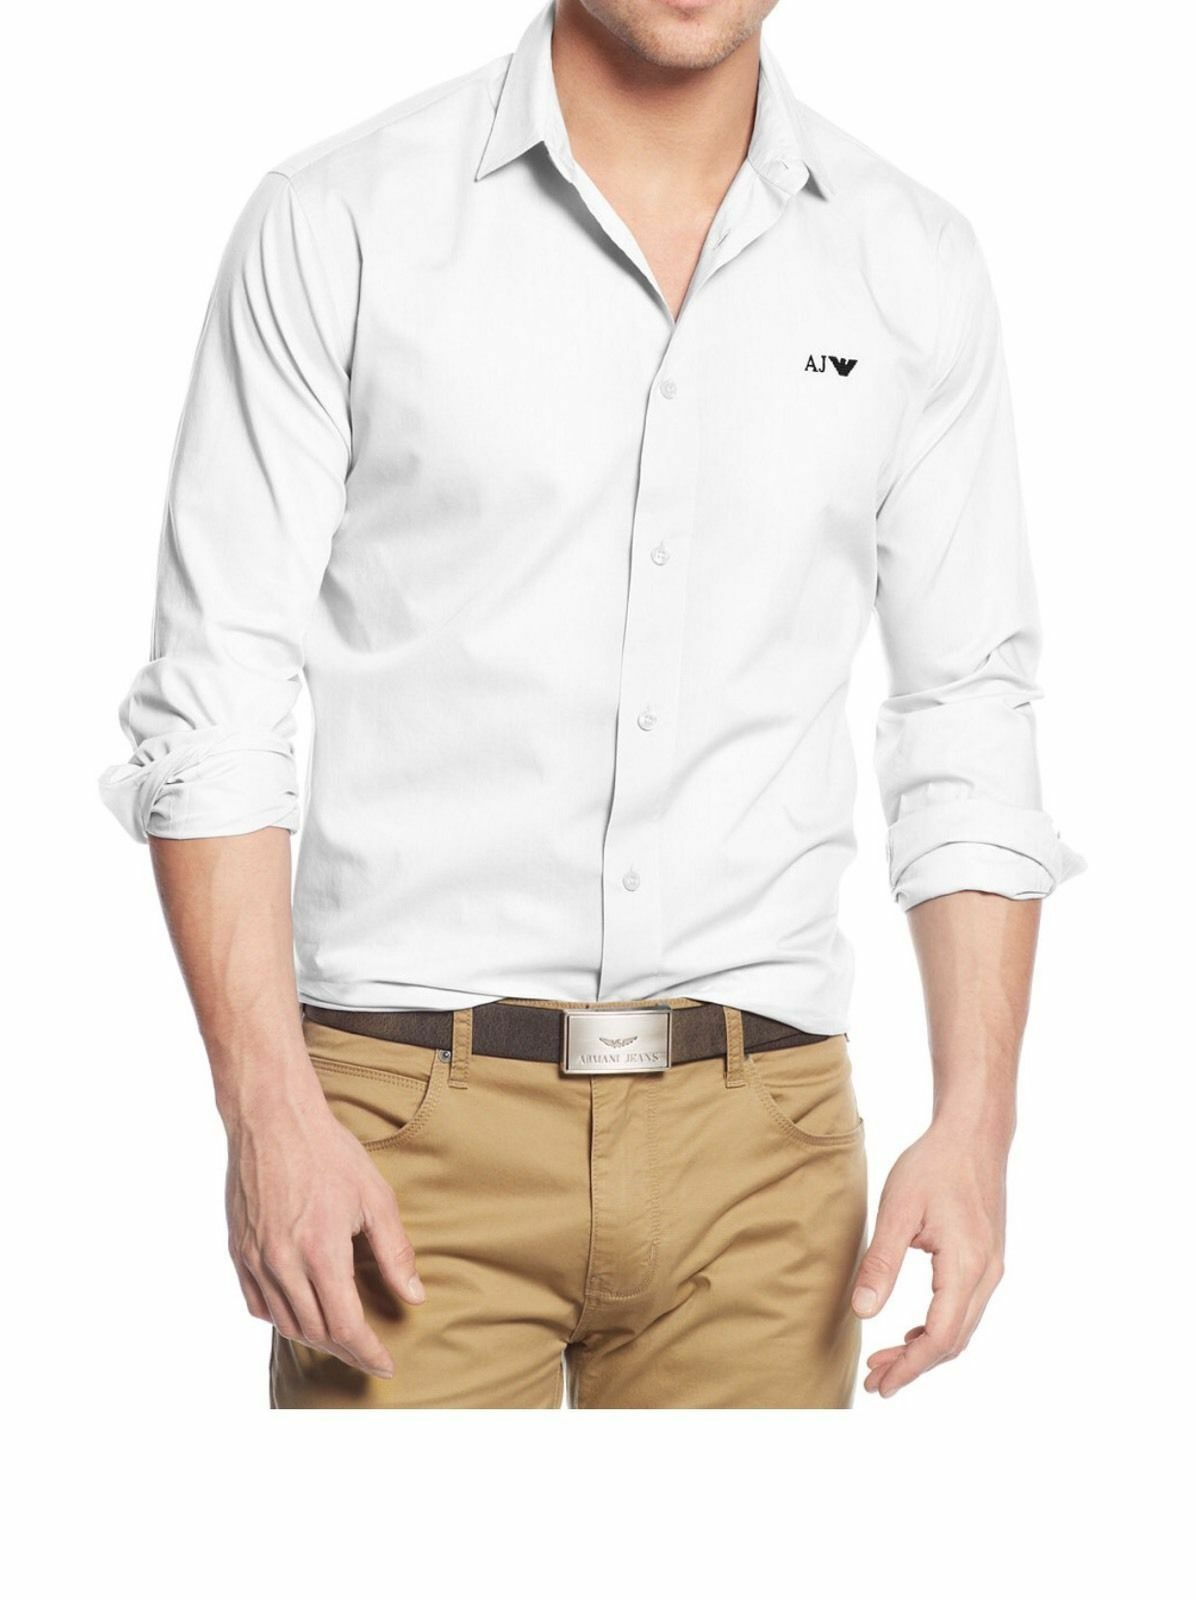 NEW MENS Armani Jeans Long-Sleeve Solid Woven Logo Sport white Shirt